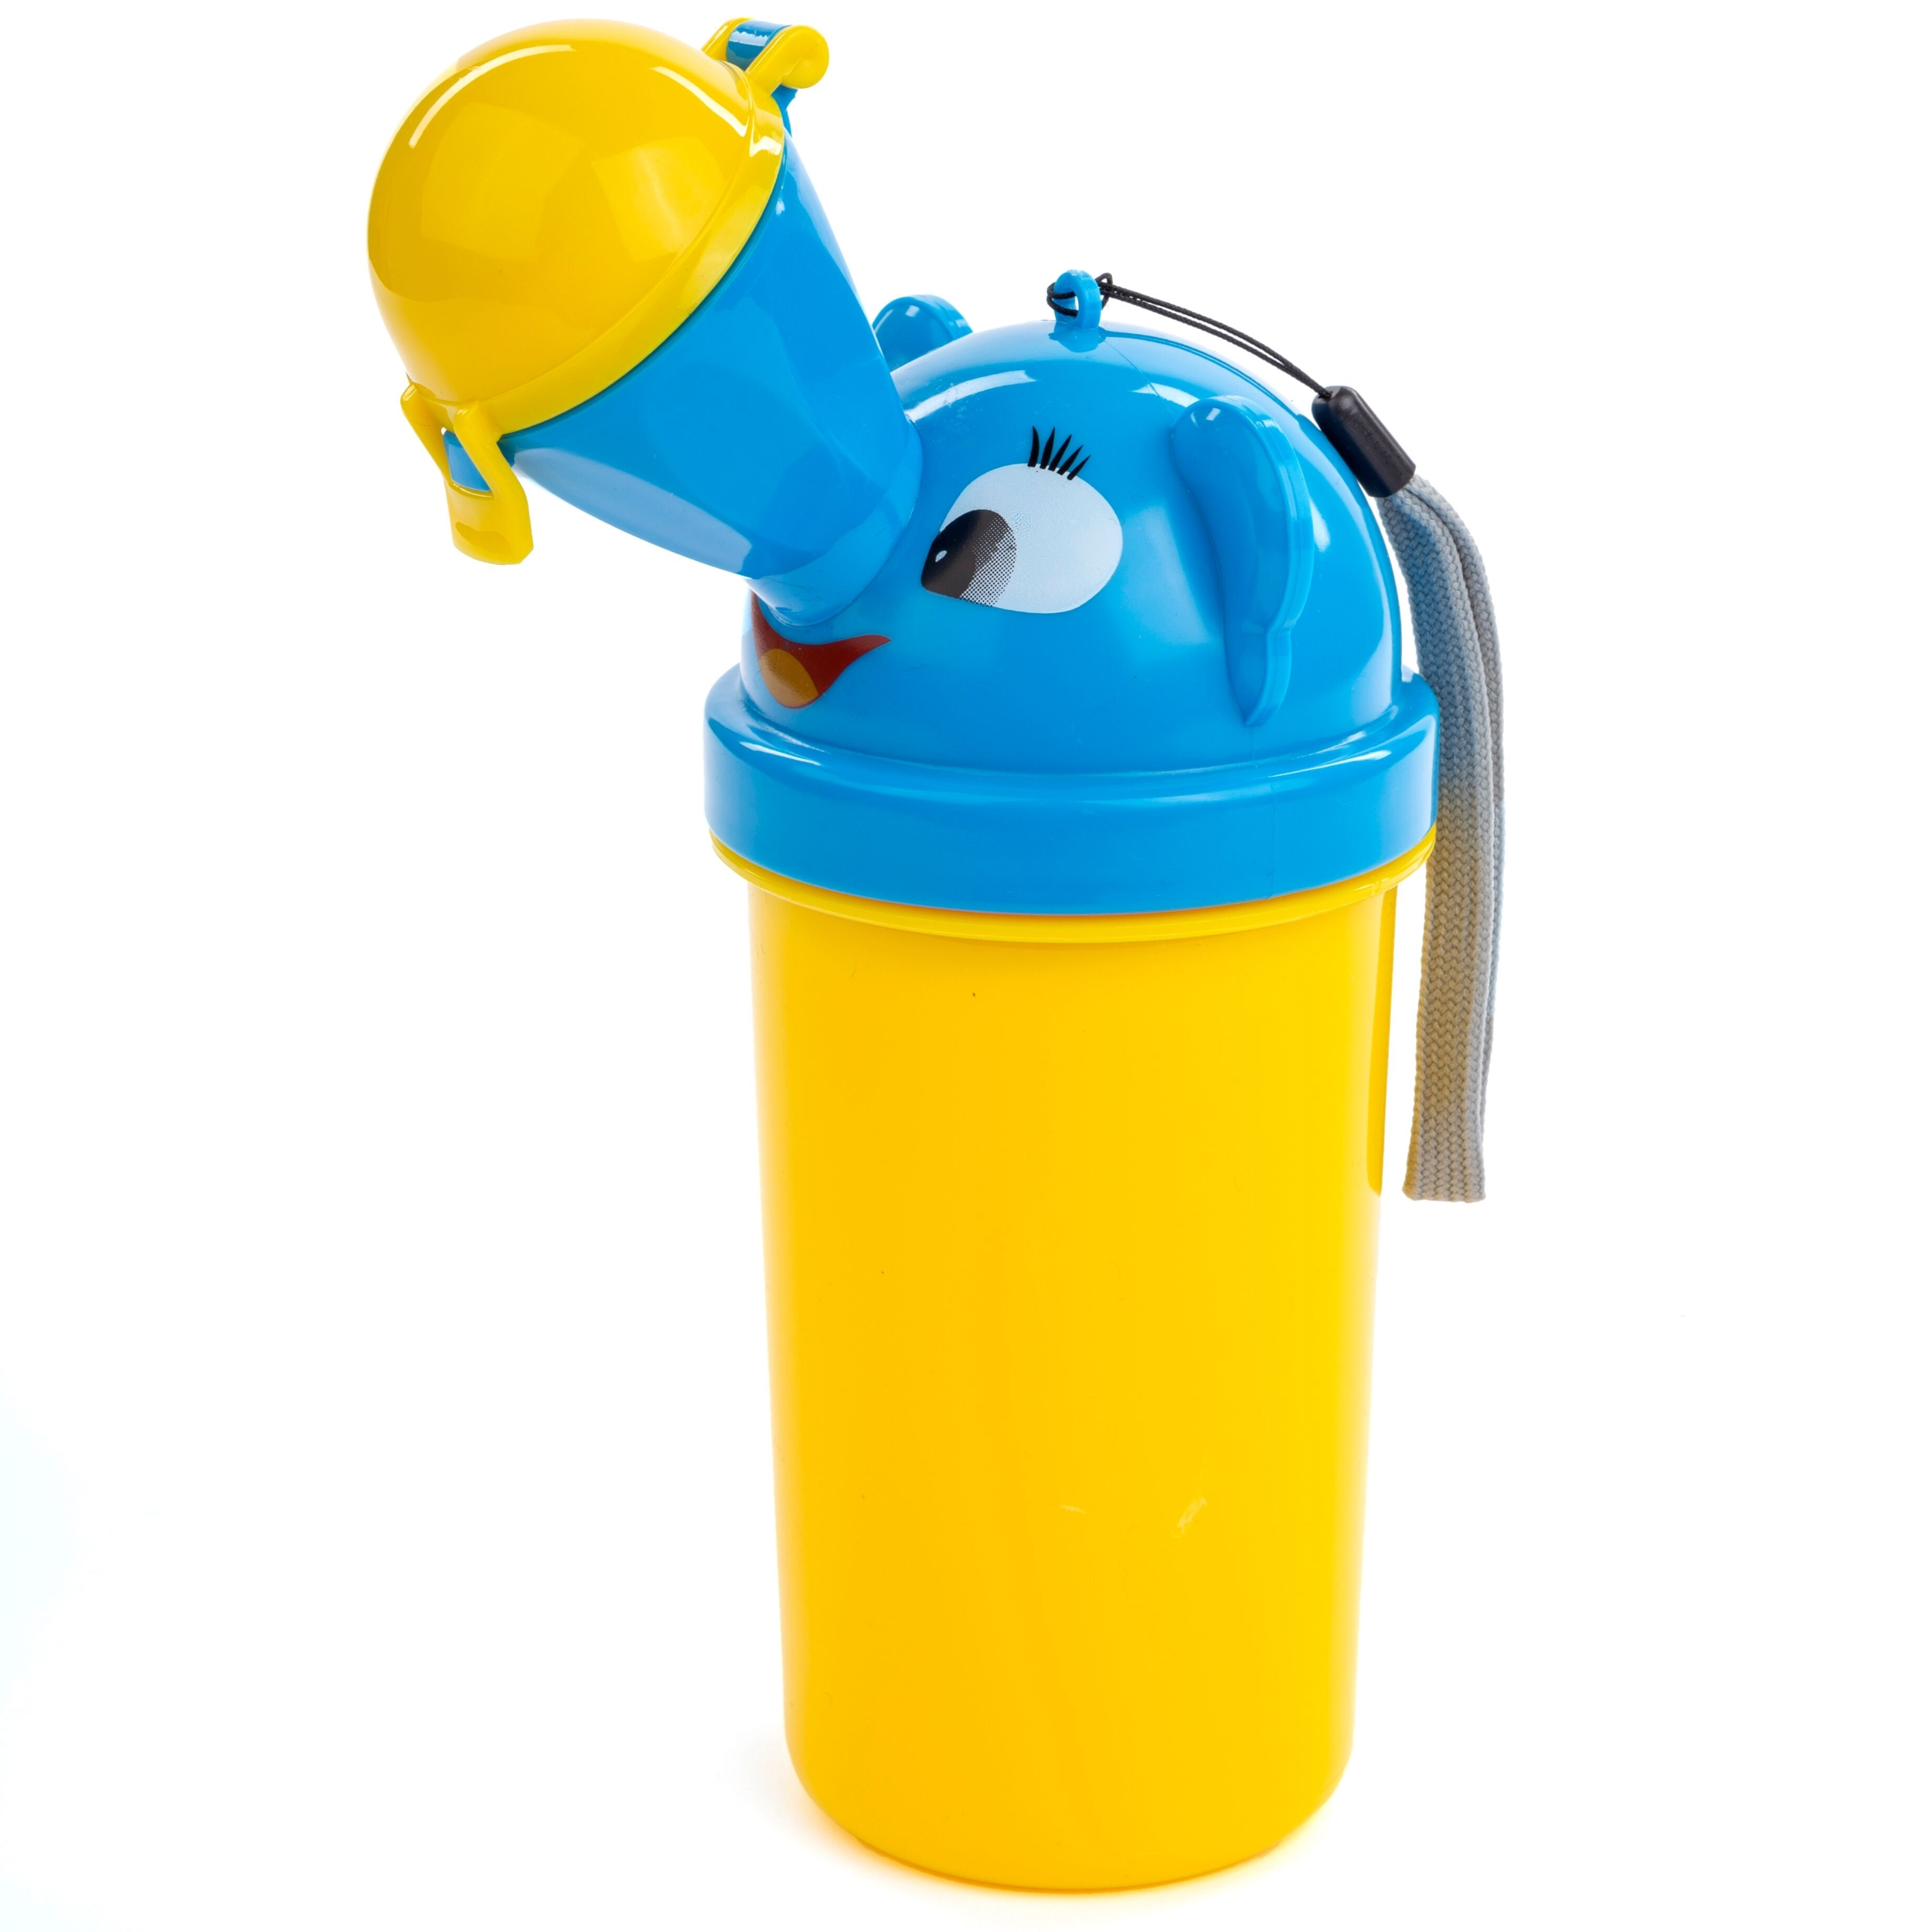 On-The-Go Portable Potty Urinal For Travel or Potty Training, Toddler Boy Design